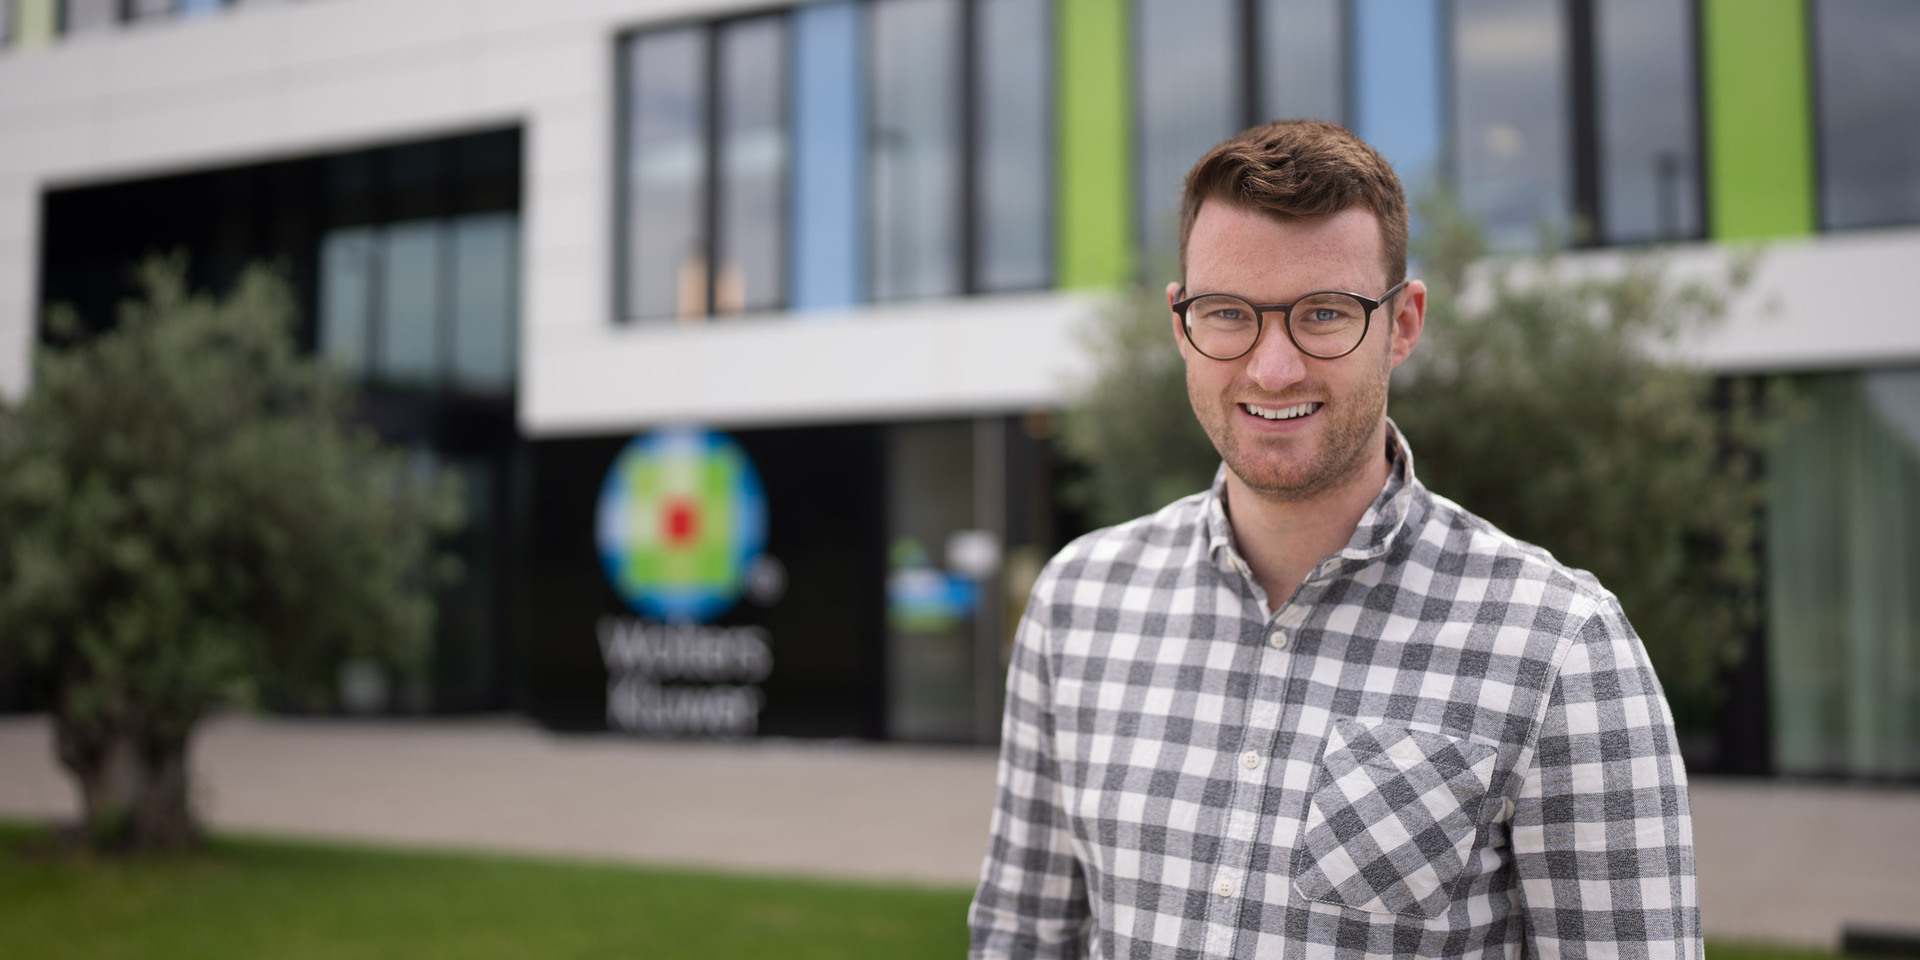 Wir sind Wolters Kluwer – Philipp Nürnberg, Product Manager